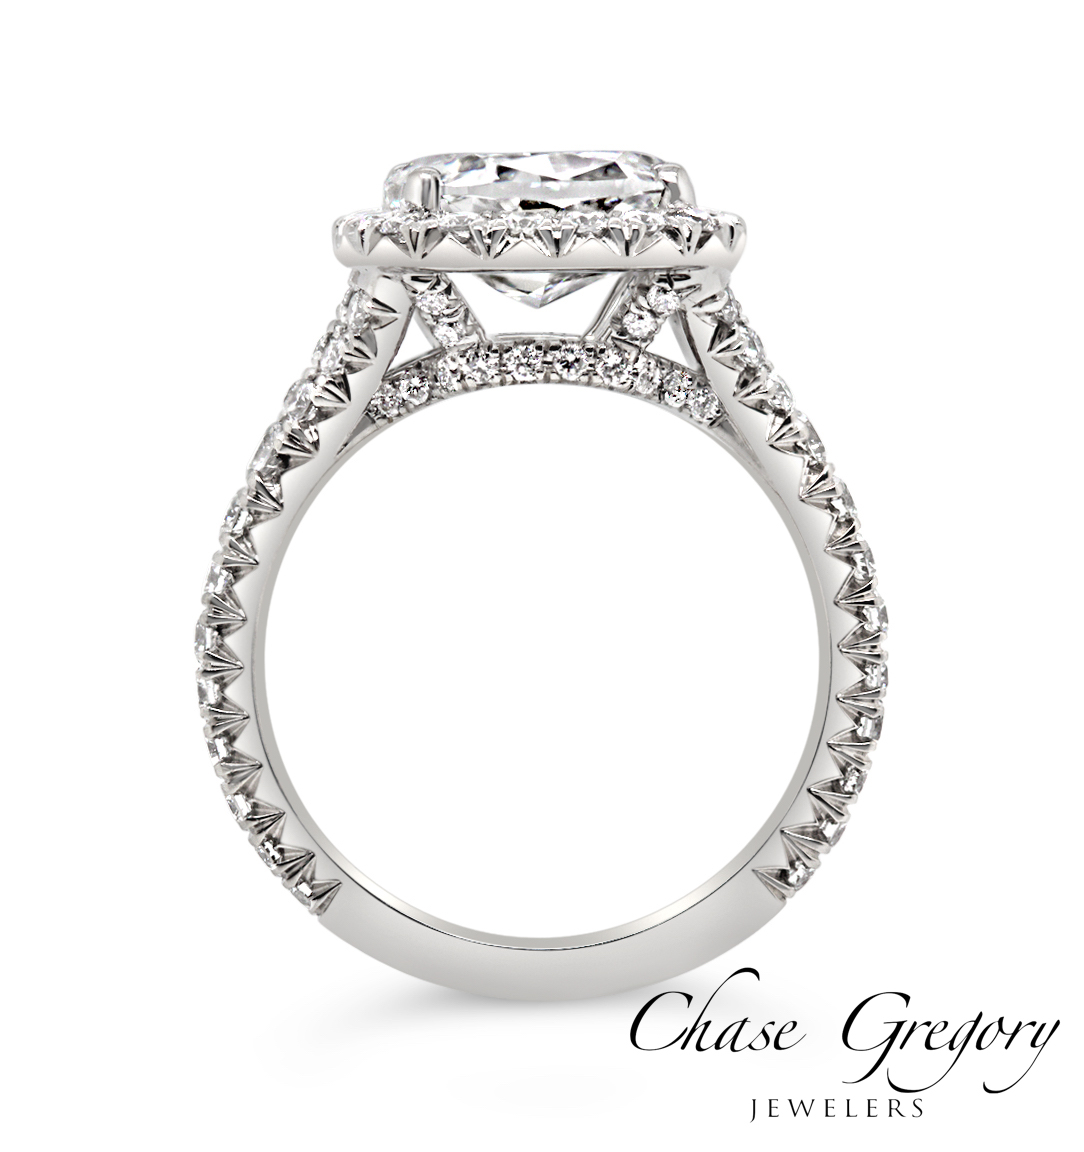 Full french pave engagement ring